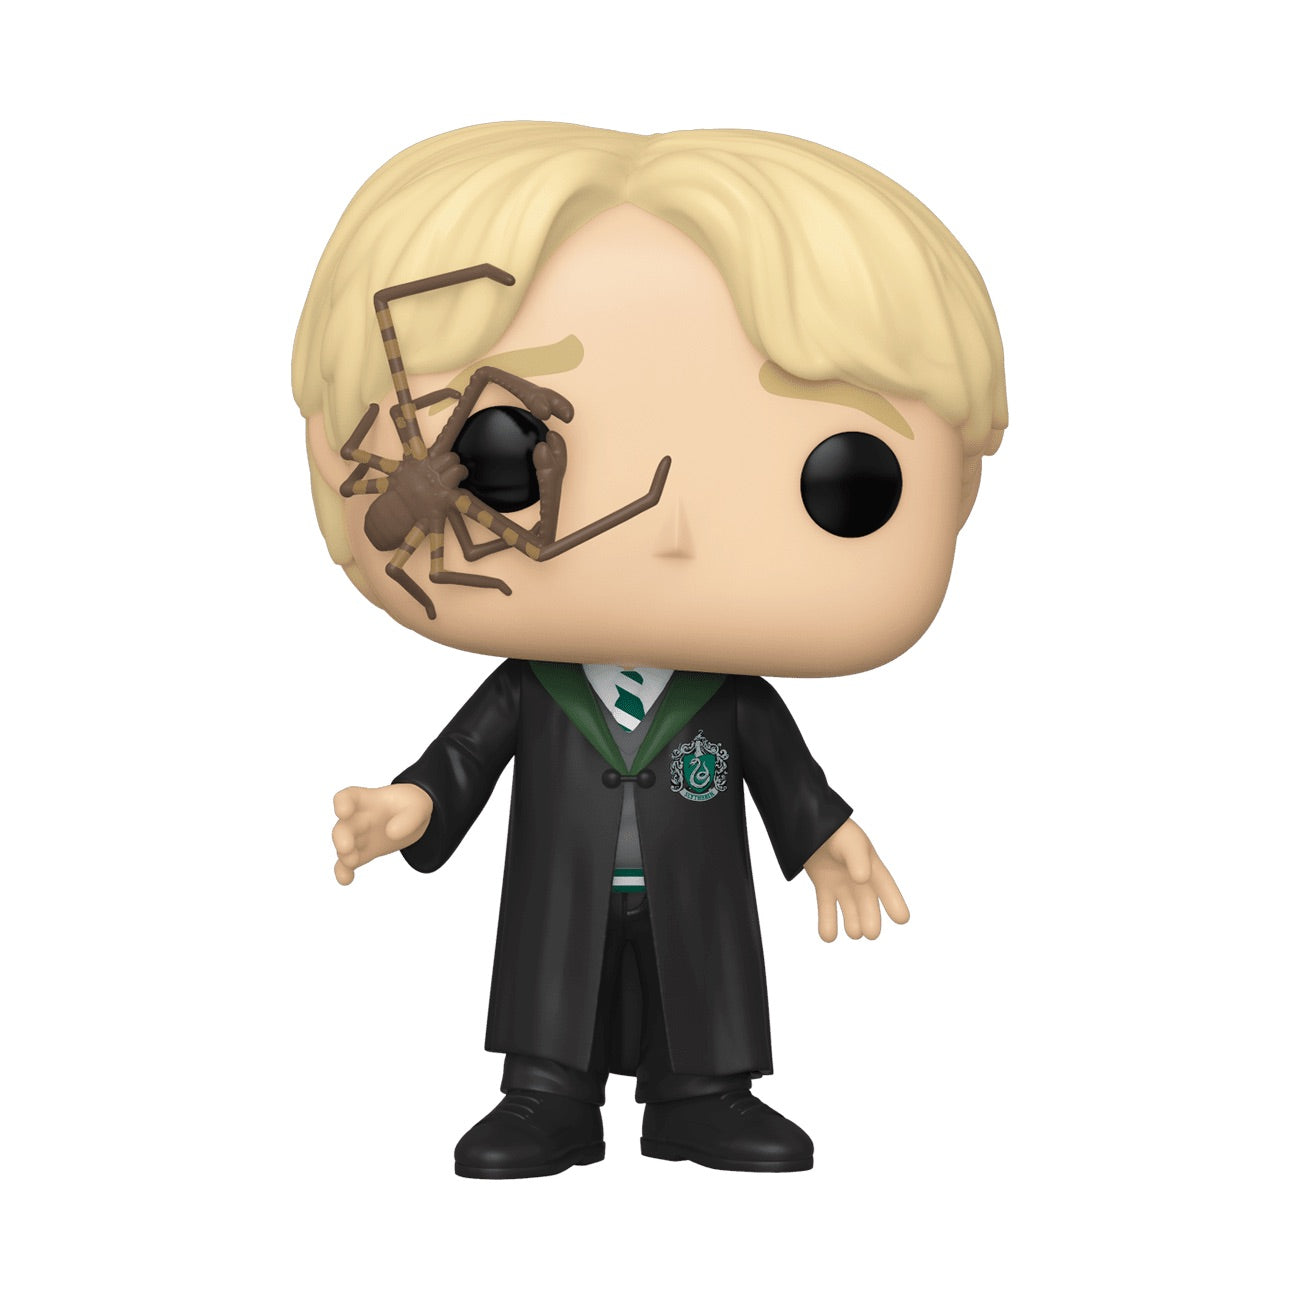 Harry Potter Draco Malfoy with Whip Spider